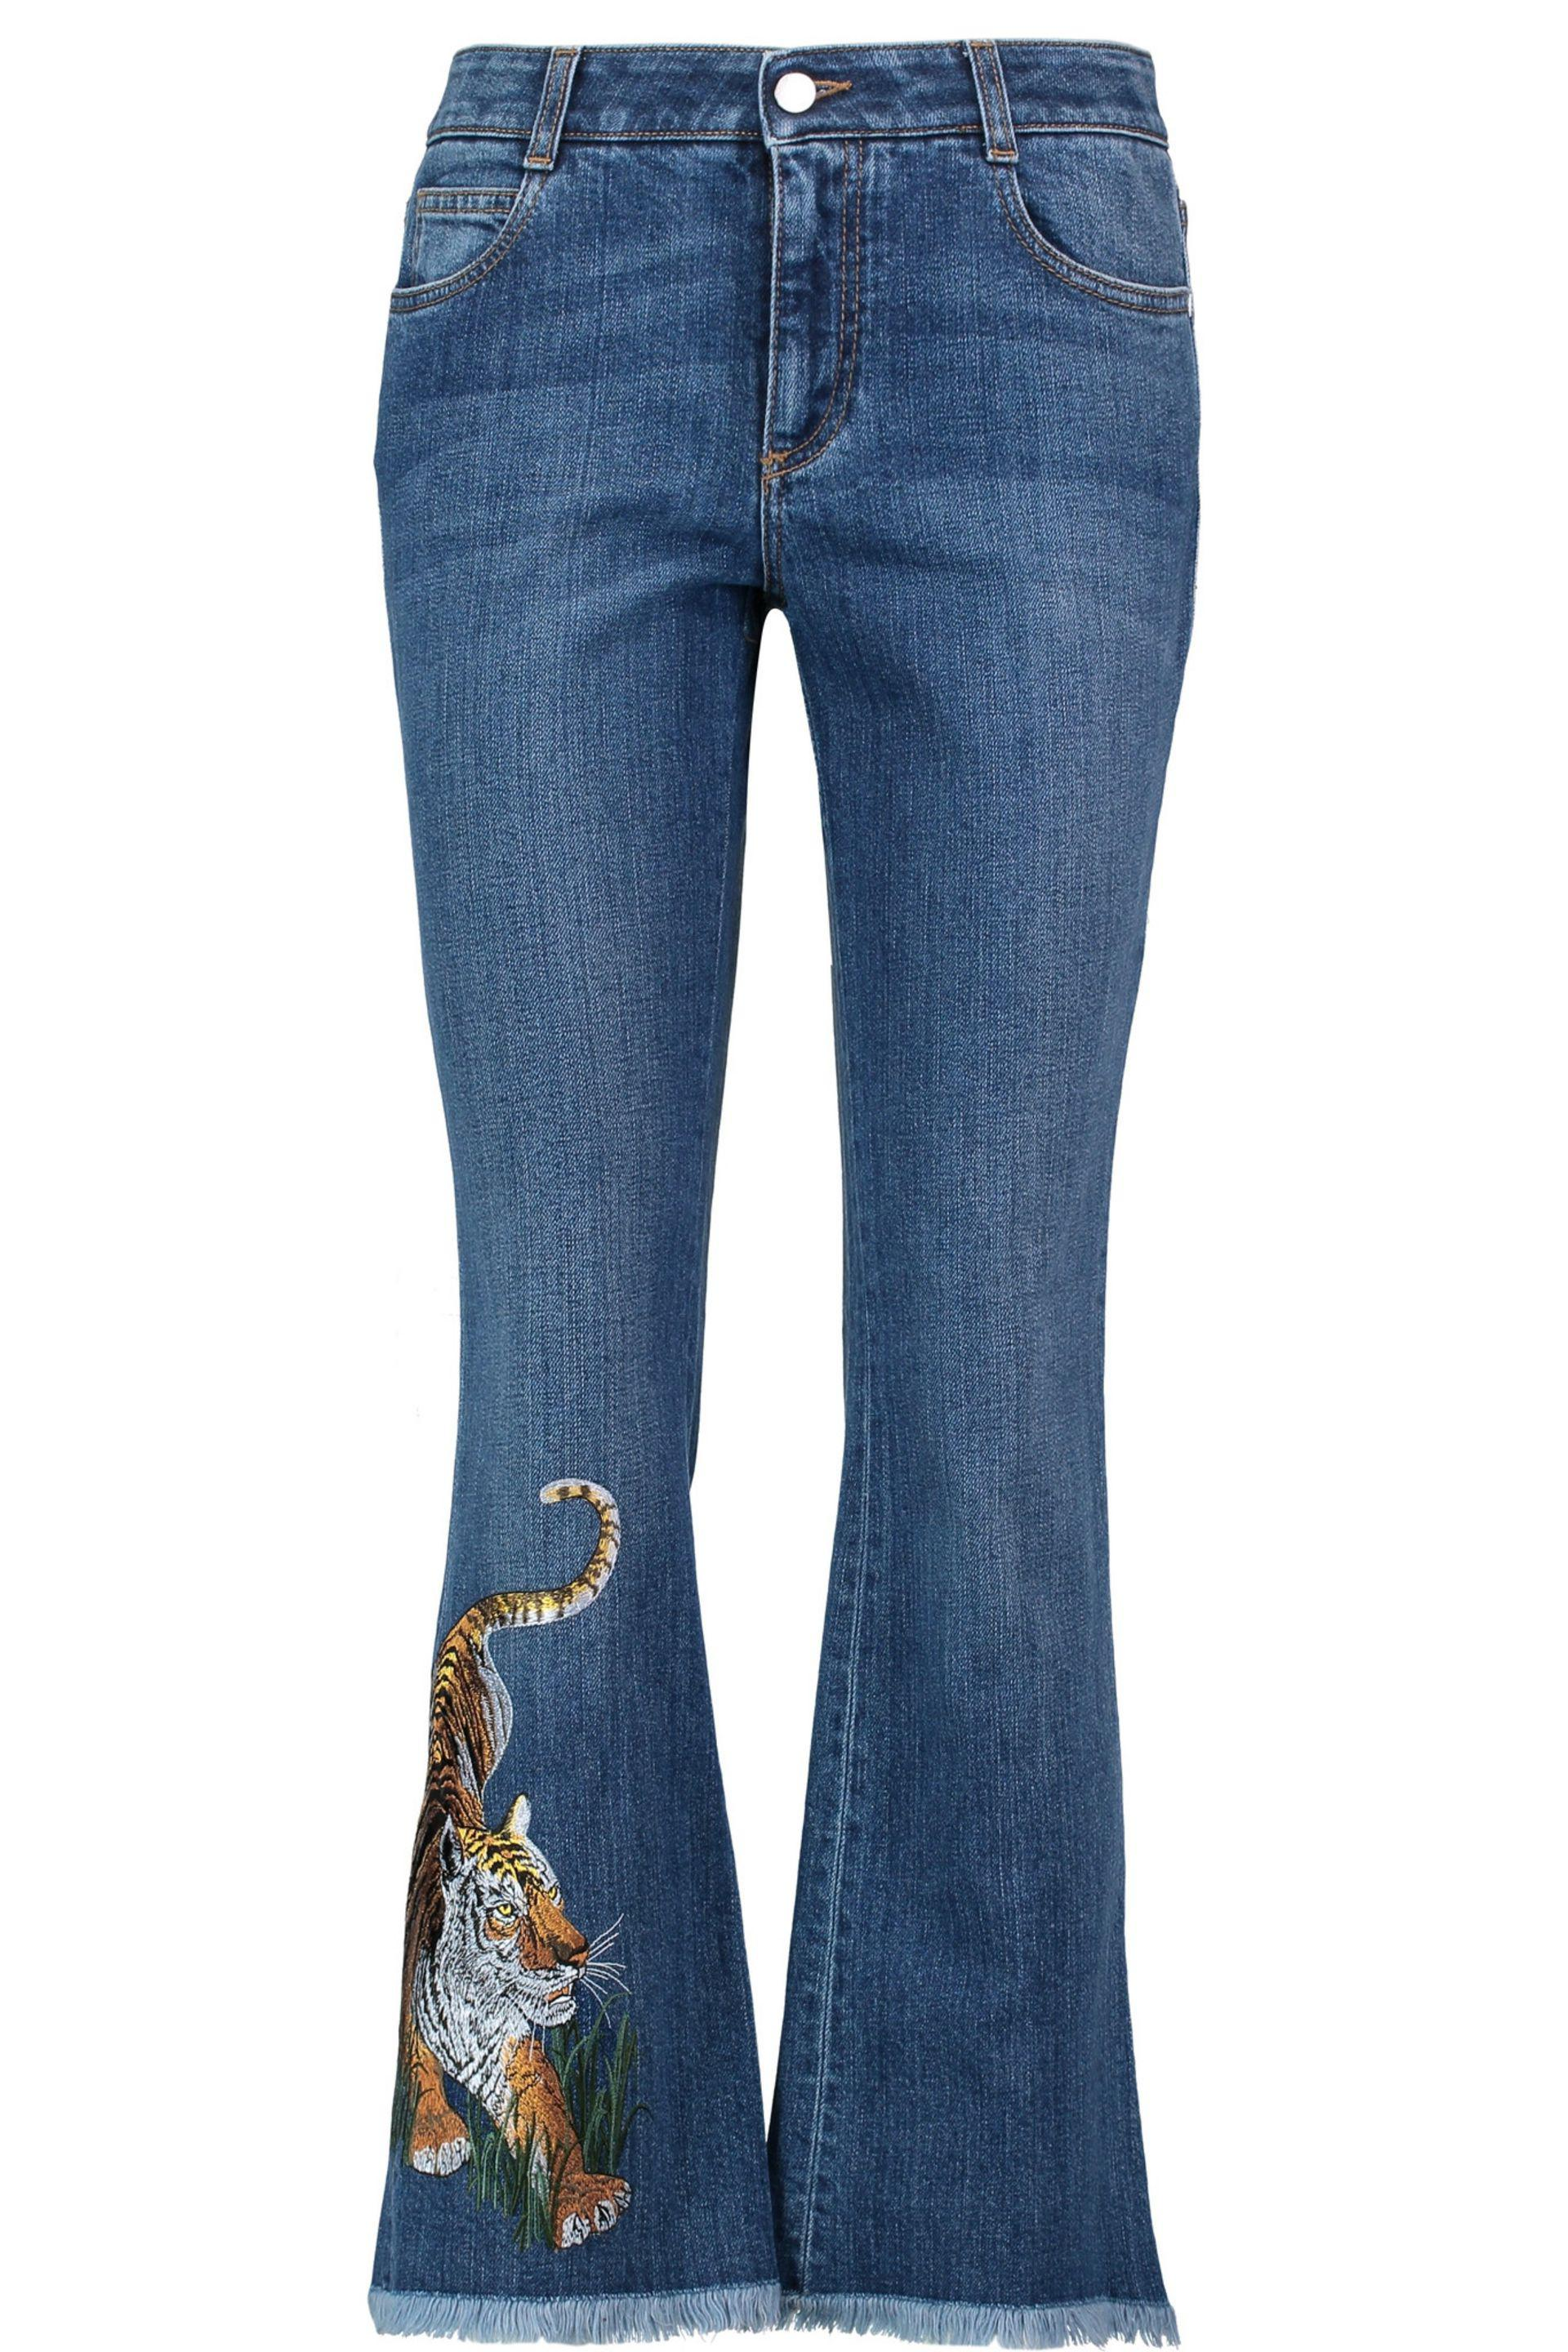 Stella Mccartney Embroidered Mid-rise Bootcut Jeans Mid Denim In Blue | Lyst